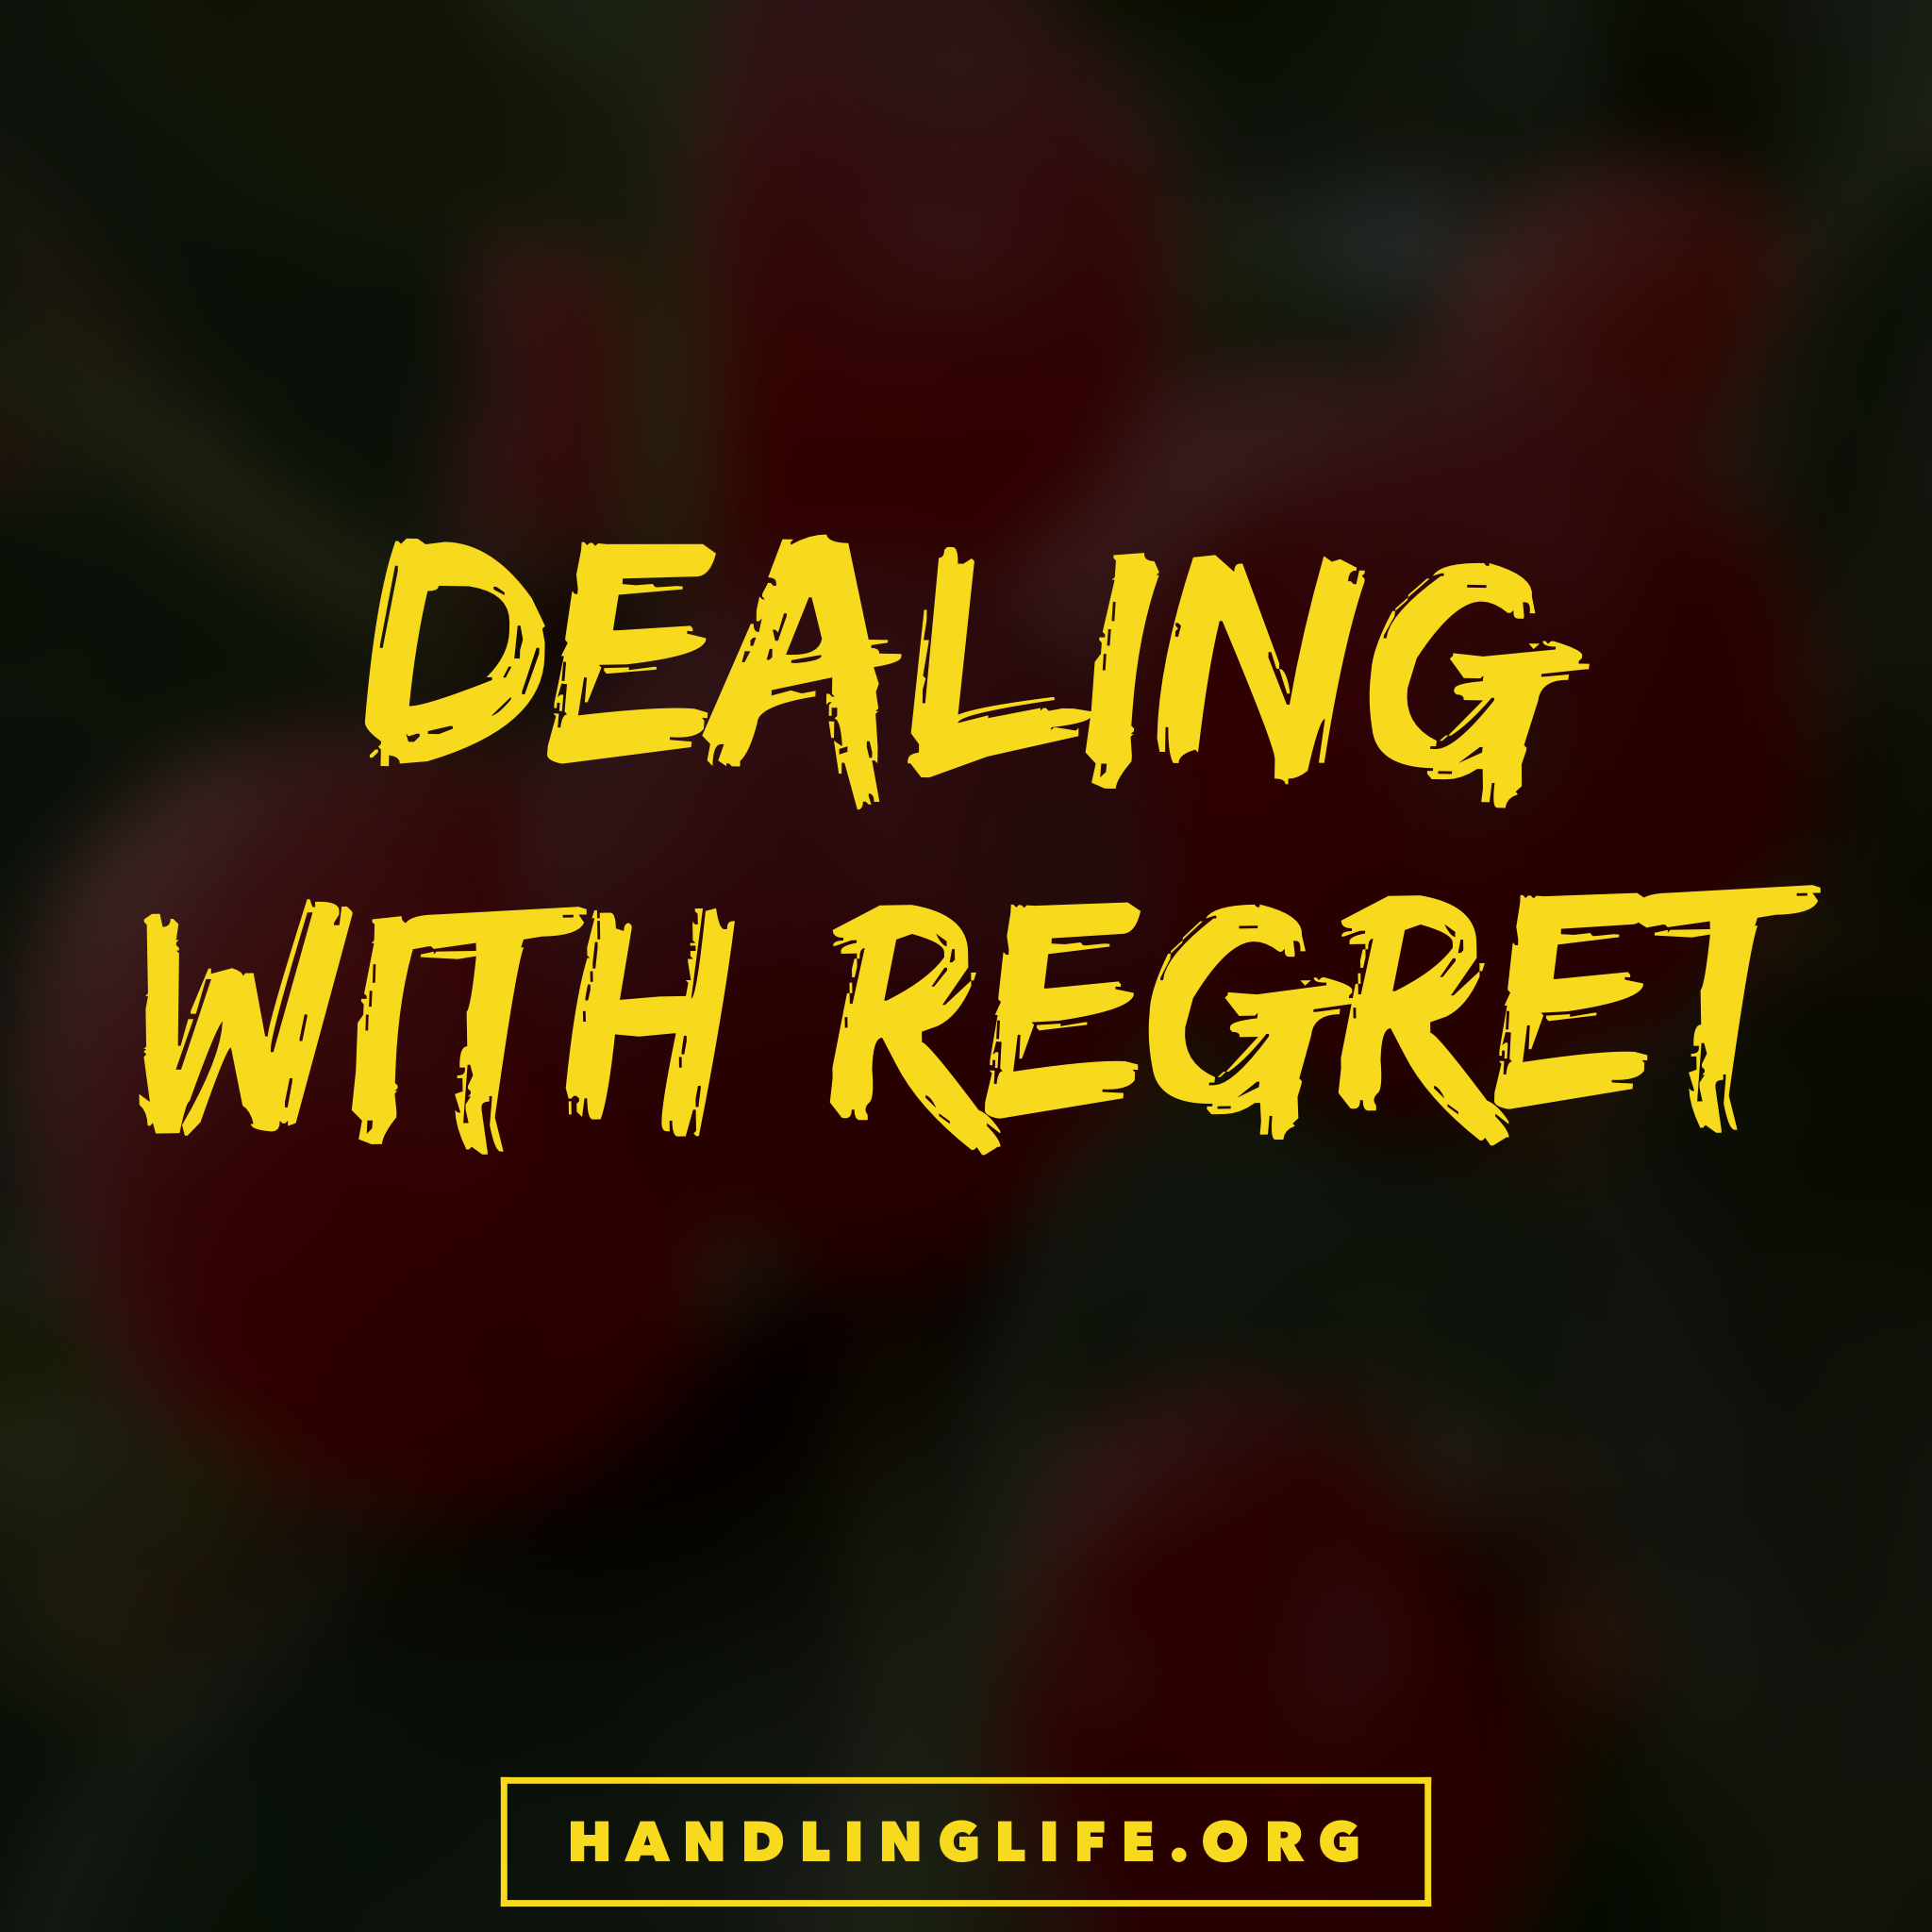 Artwork for Dealing with Regret